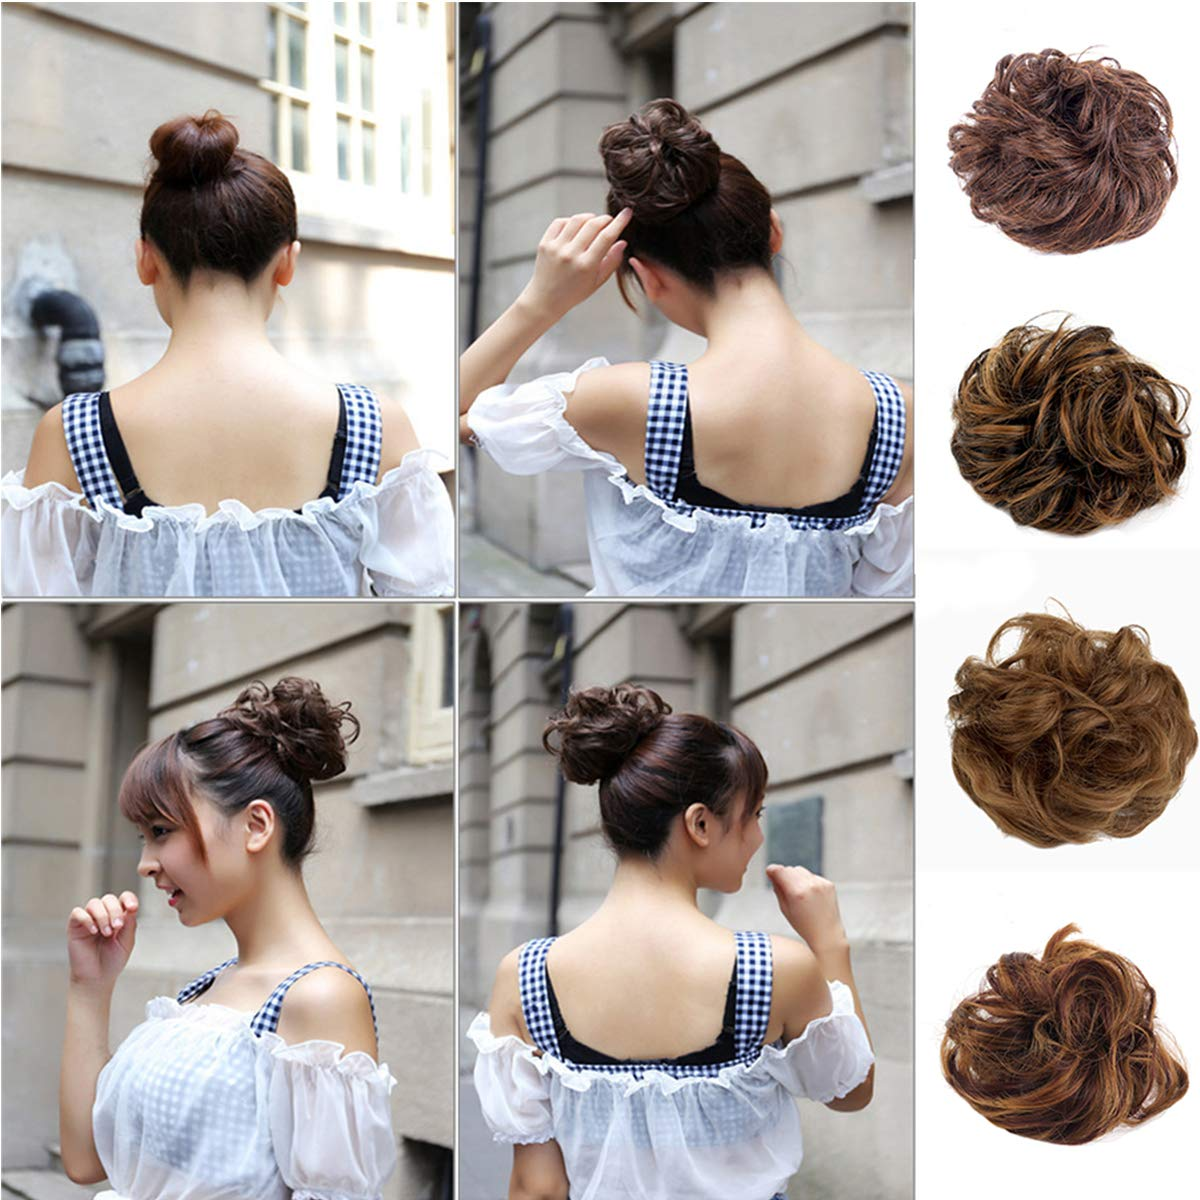 Leeons Wavy Donut Updo Ribbon Ponytail Hair Extensions Curly Messy Bun Dish Scrunchy Scrunchie Hairpiece Wave Bun Scrunchie Synthetic Hair Bun (#2) by LEEONS (Image #1)